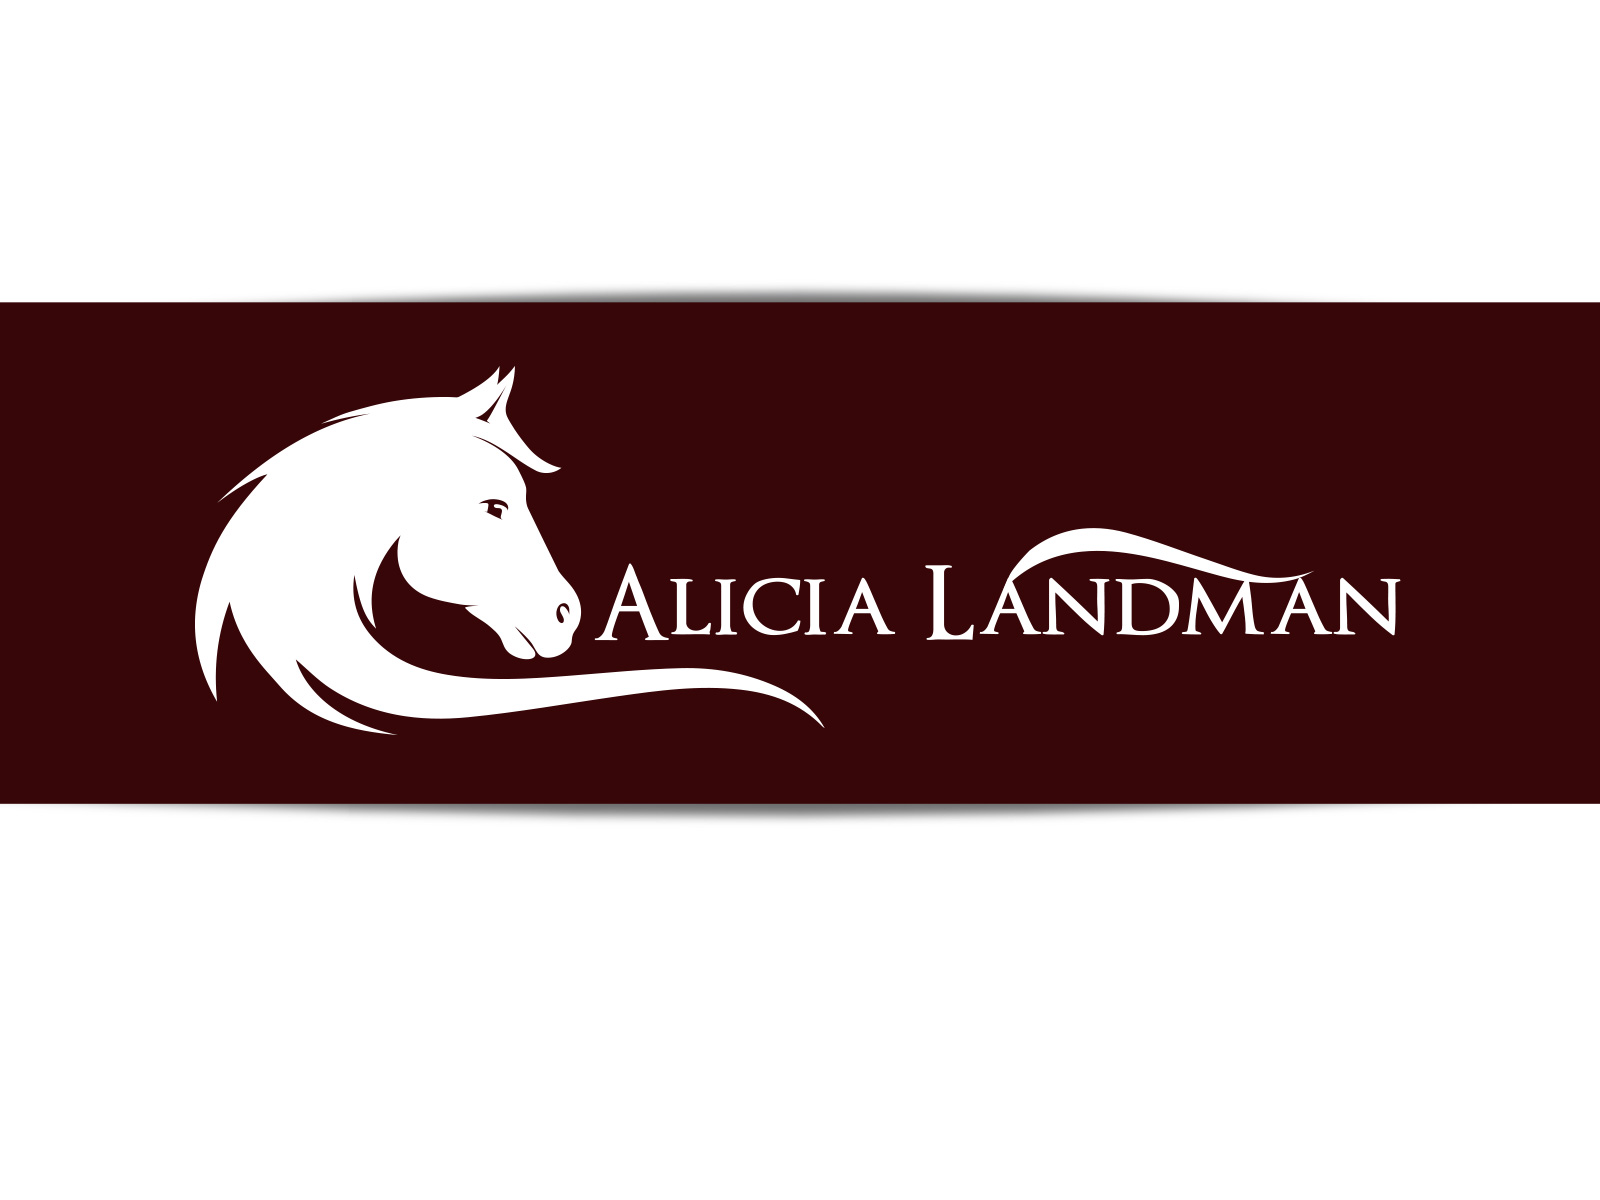 Logo Design by olii - Entry No. 125 in the Logo Design Contest Fun Logo Design for Alicia Landman.